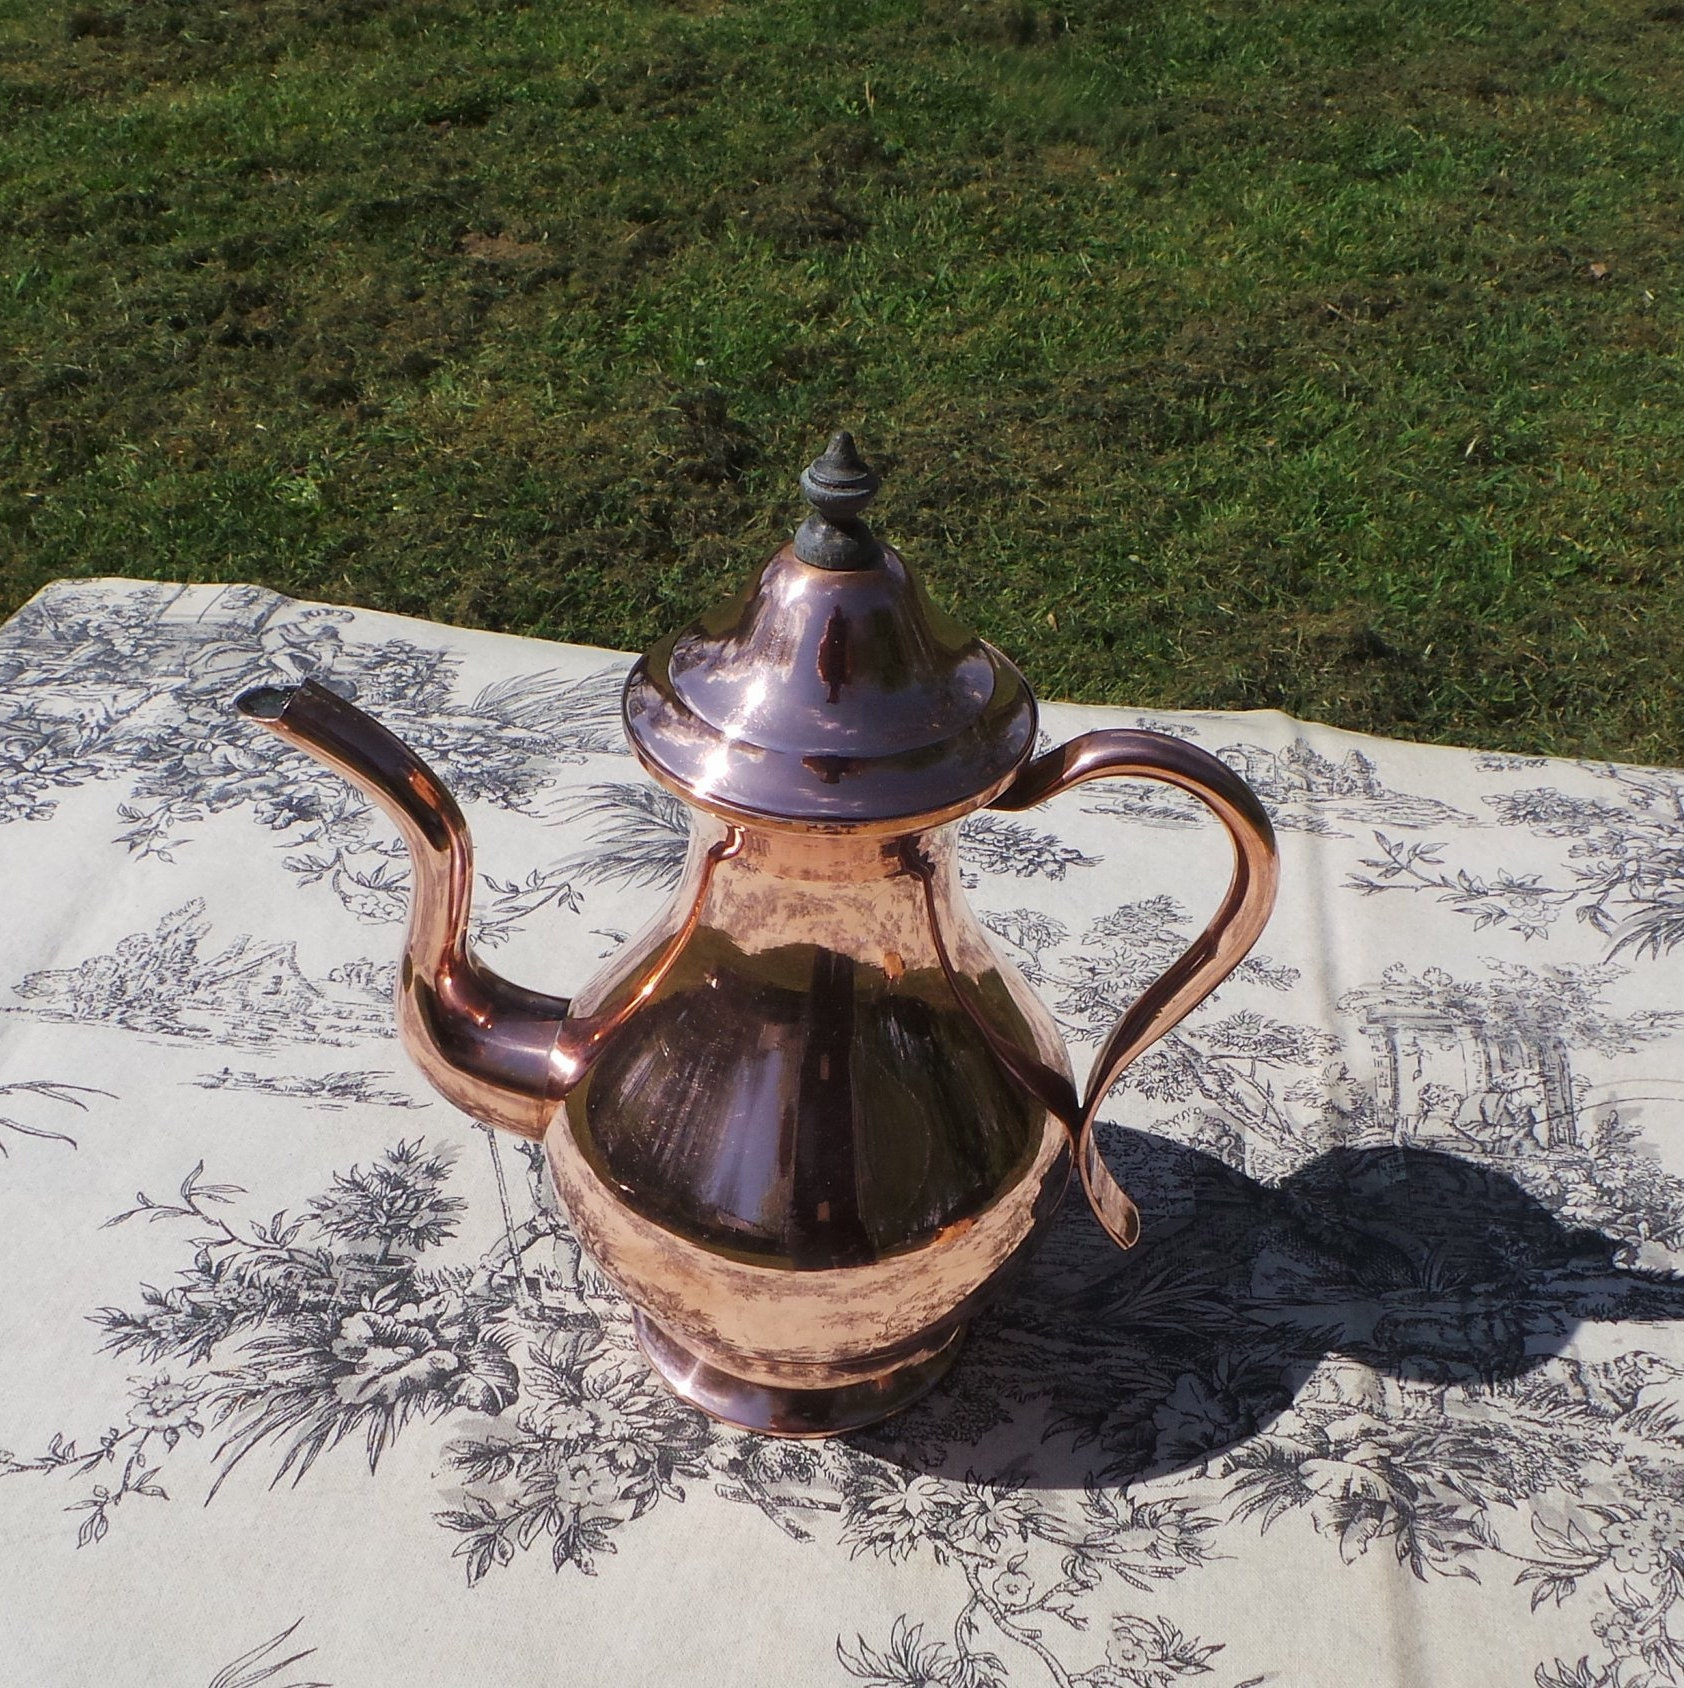 French Antique Copper Normandy Coffee Pot With Copper Handle And Wooden Finial Fittings Normandy